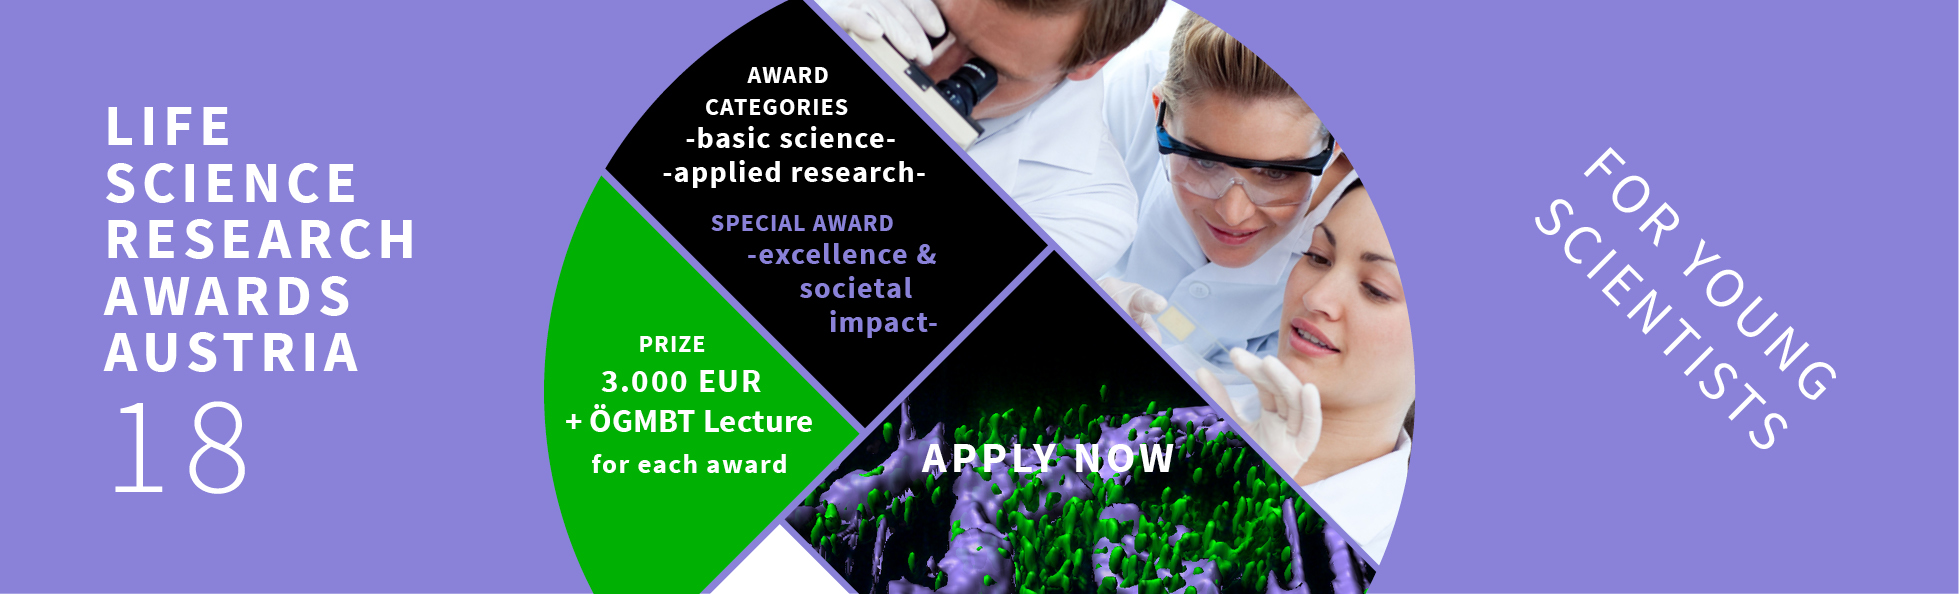 Life Science Research Award Austria 2018